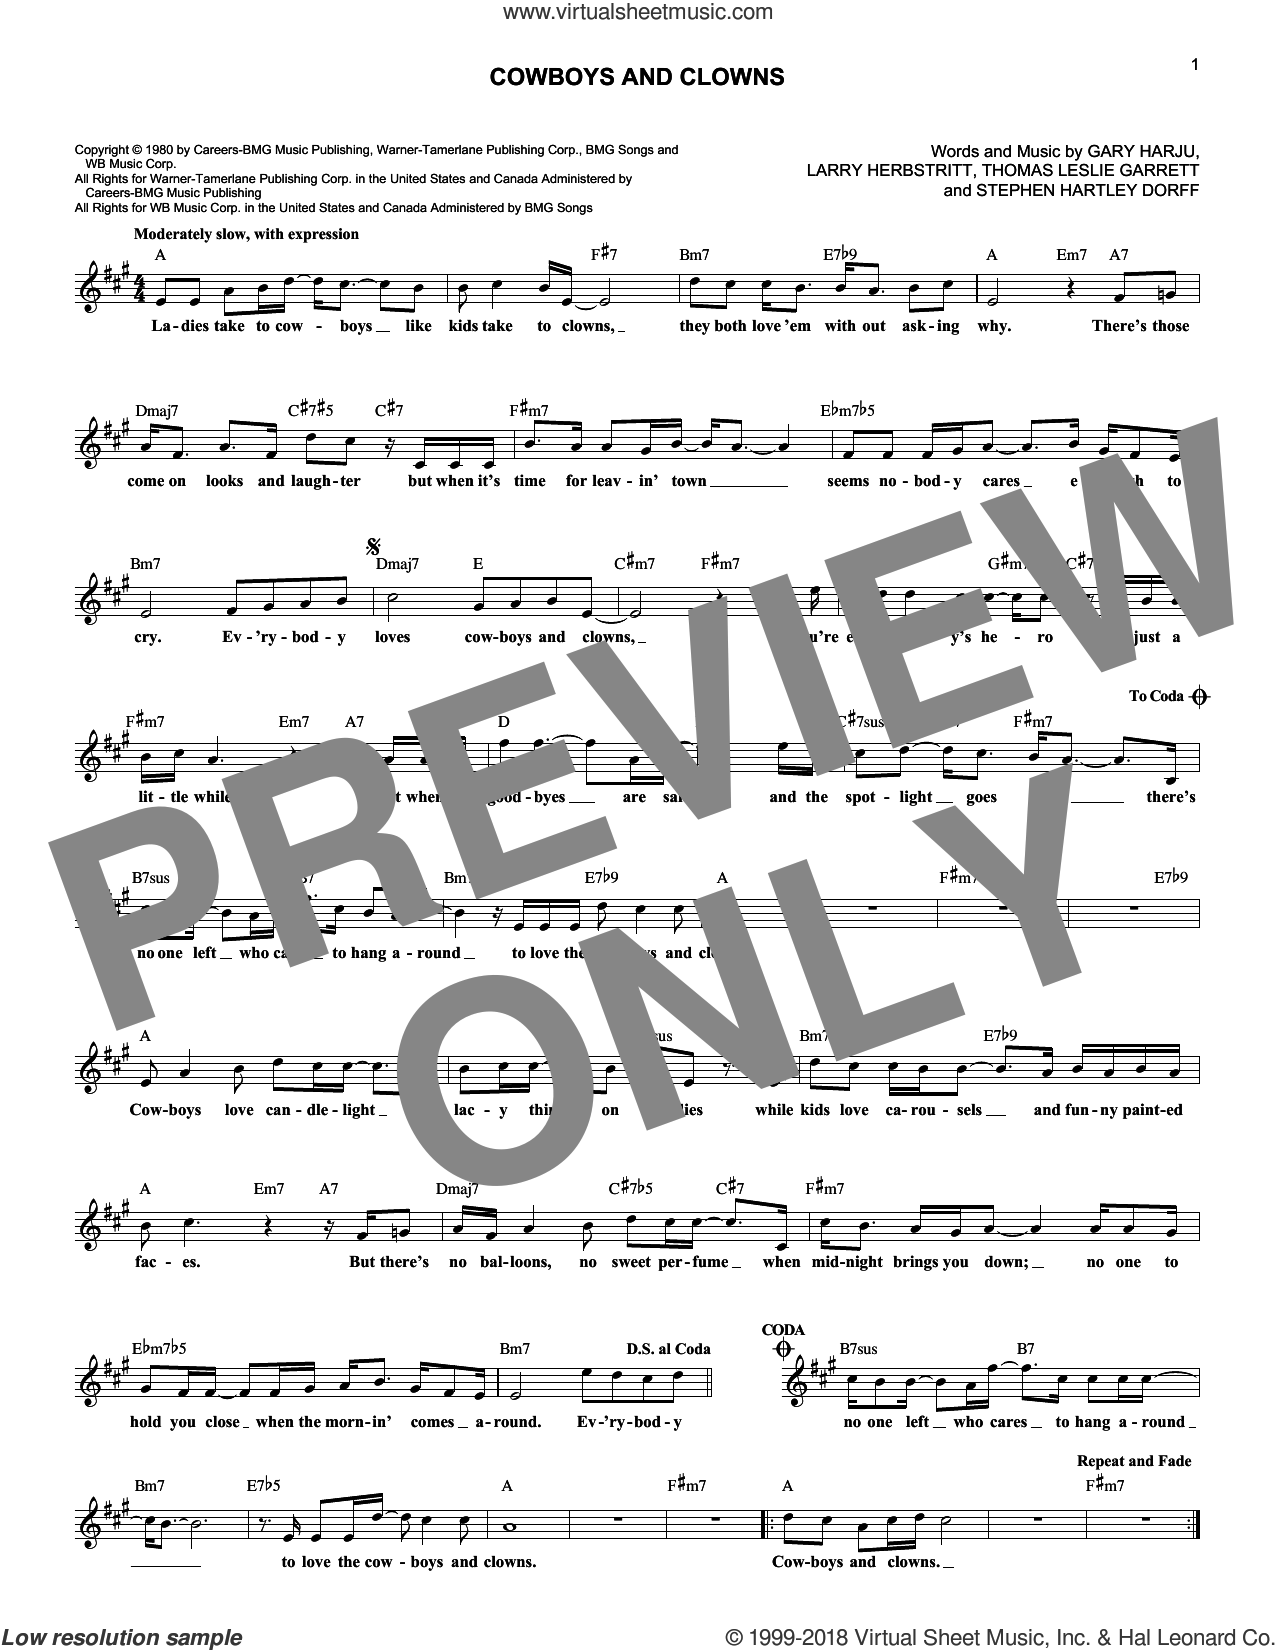 Cowboys And Clowns sheet music for voice and other instruments (fake book) by Ronnie Milsap, Gary Harju, Larry Herbstritt, Snuff Garrett and Steve Dorff, intermediate skill level